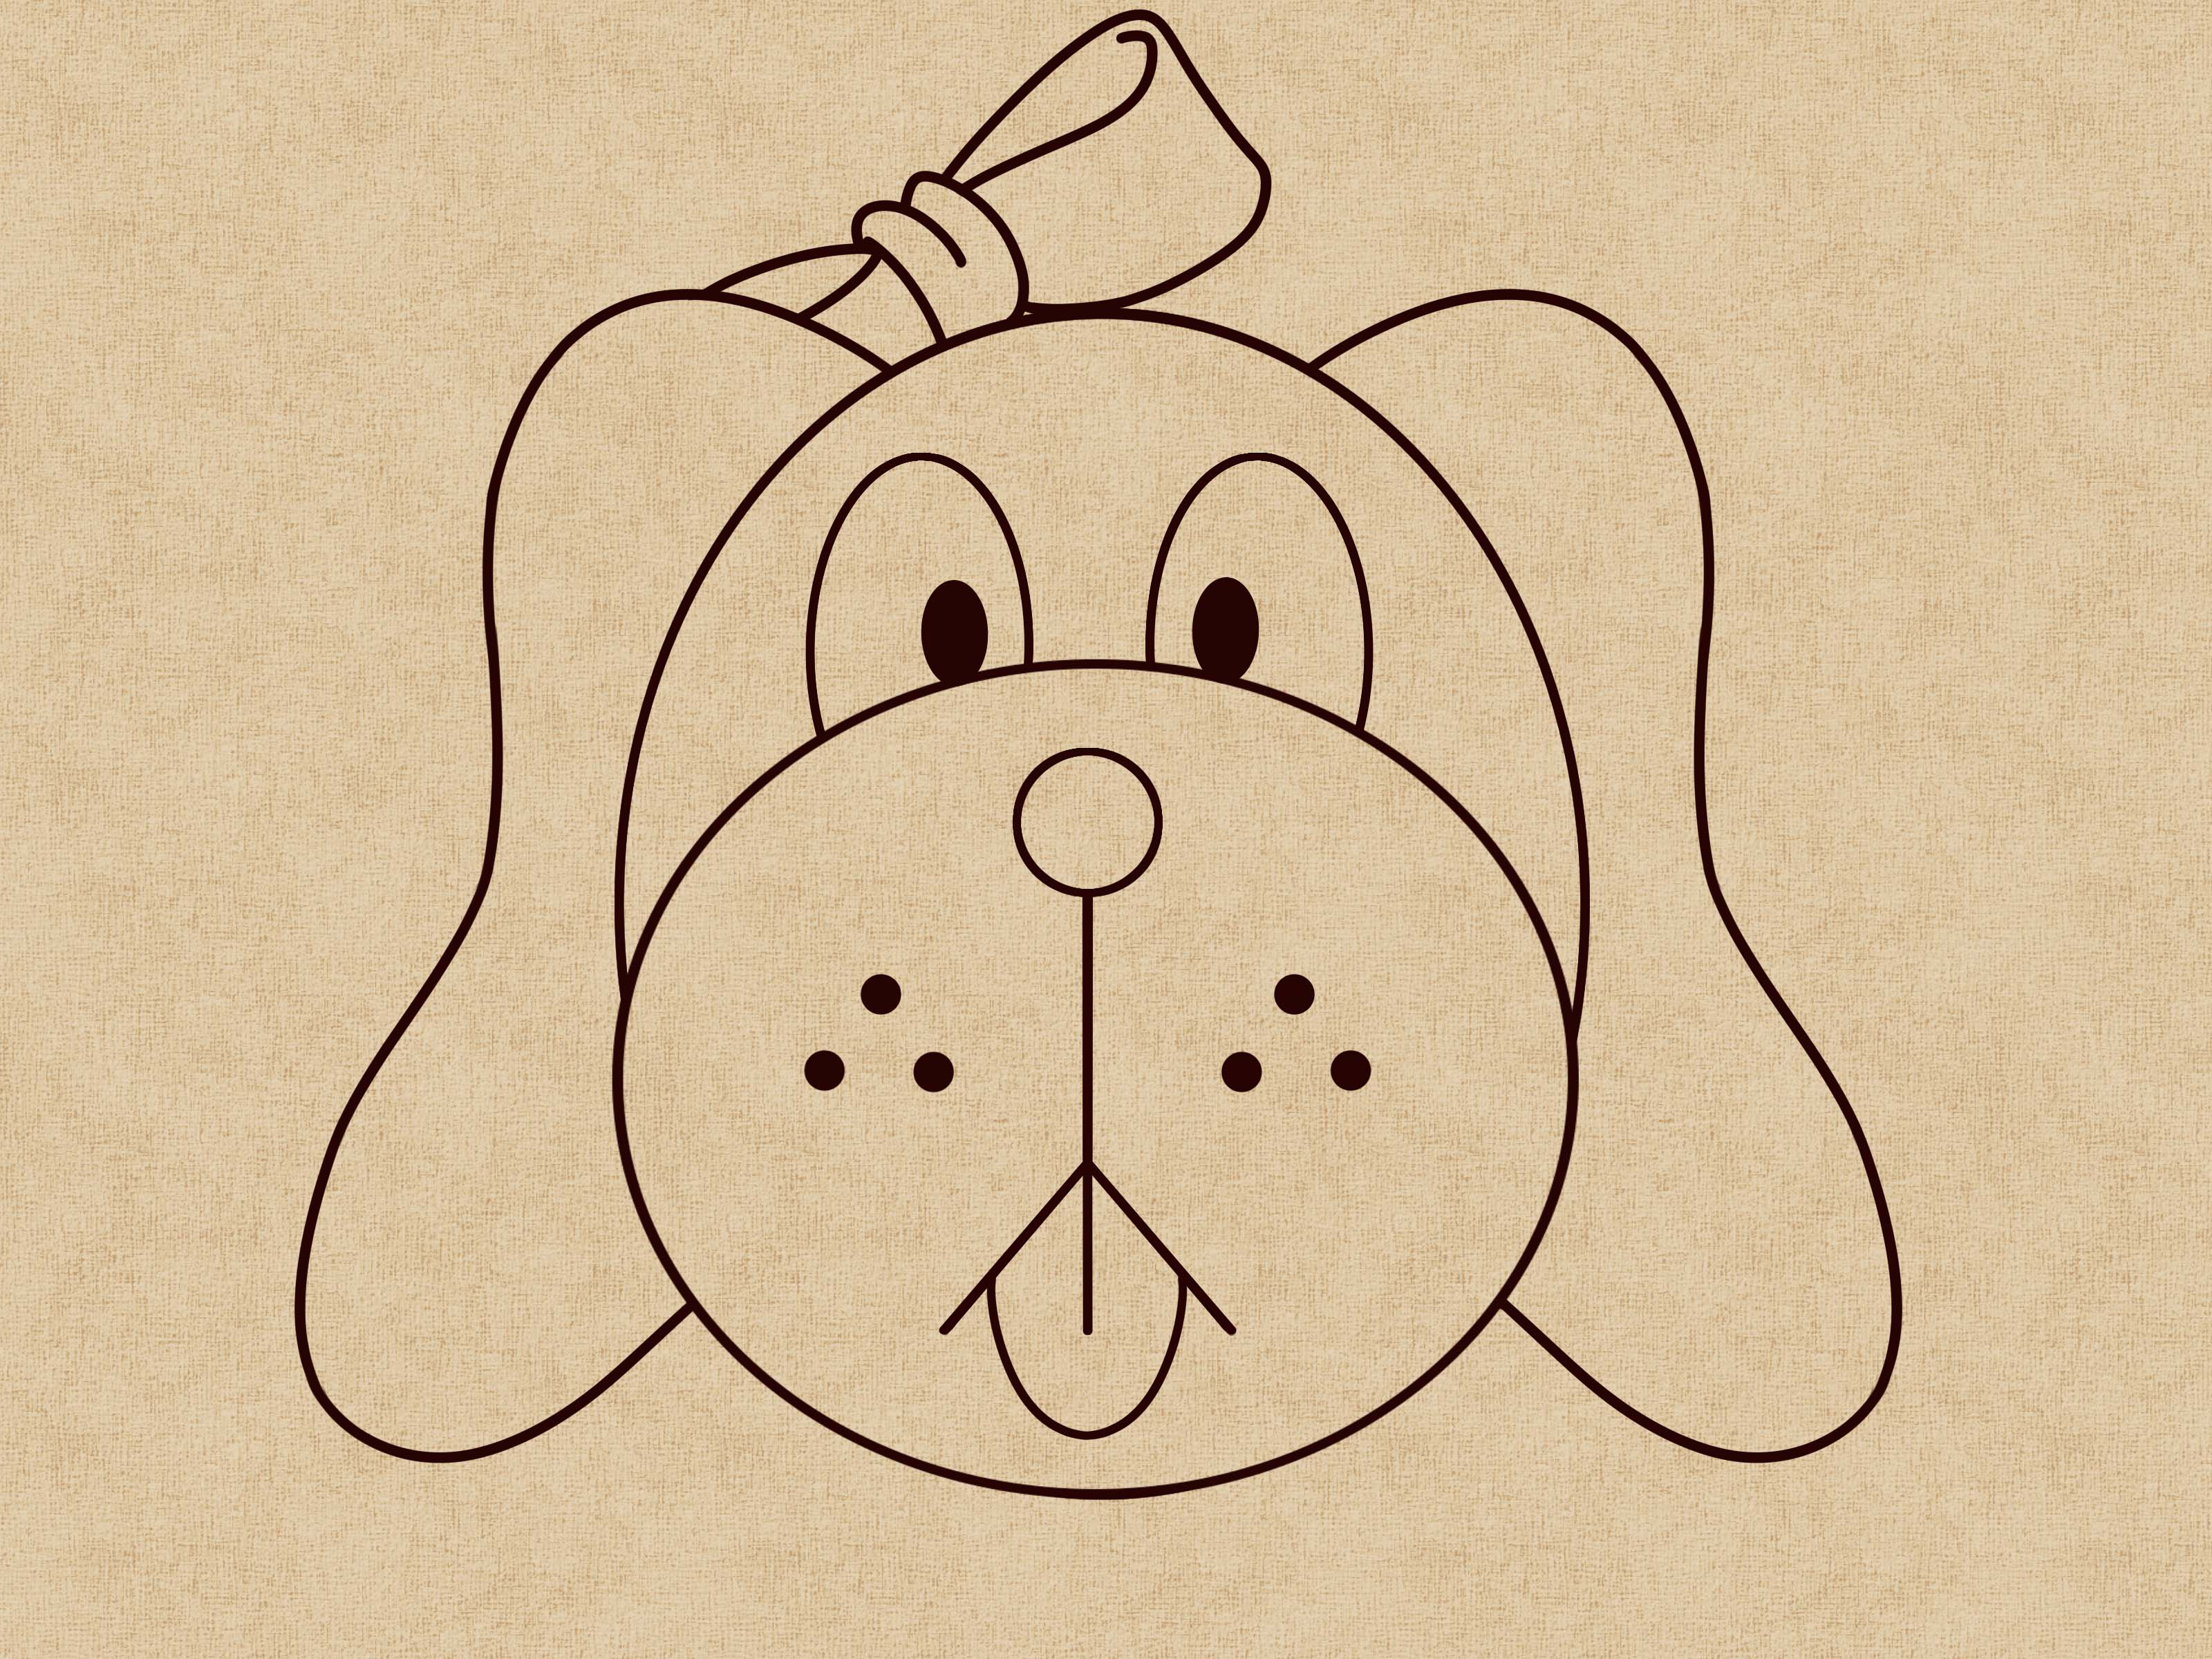 Continuous Line Drawing Face : Dog face cartoon drawing at getdrawings free for personal